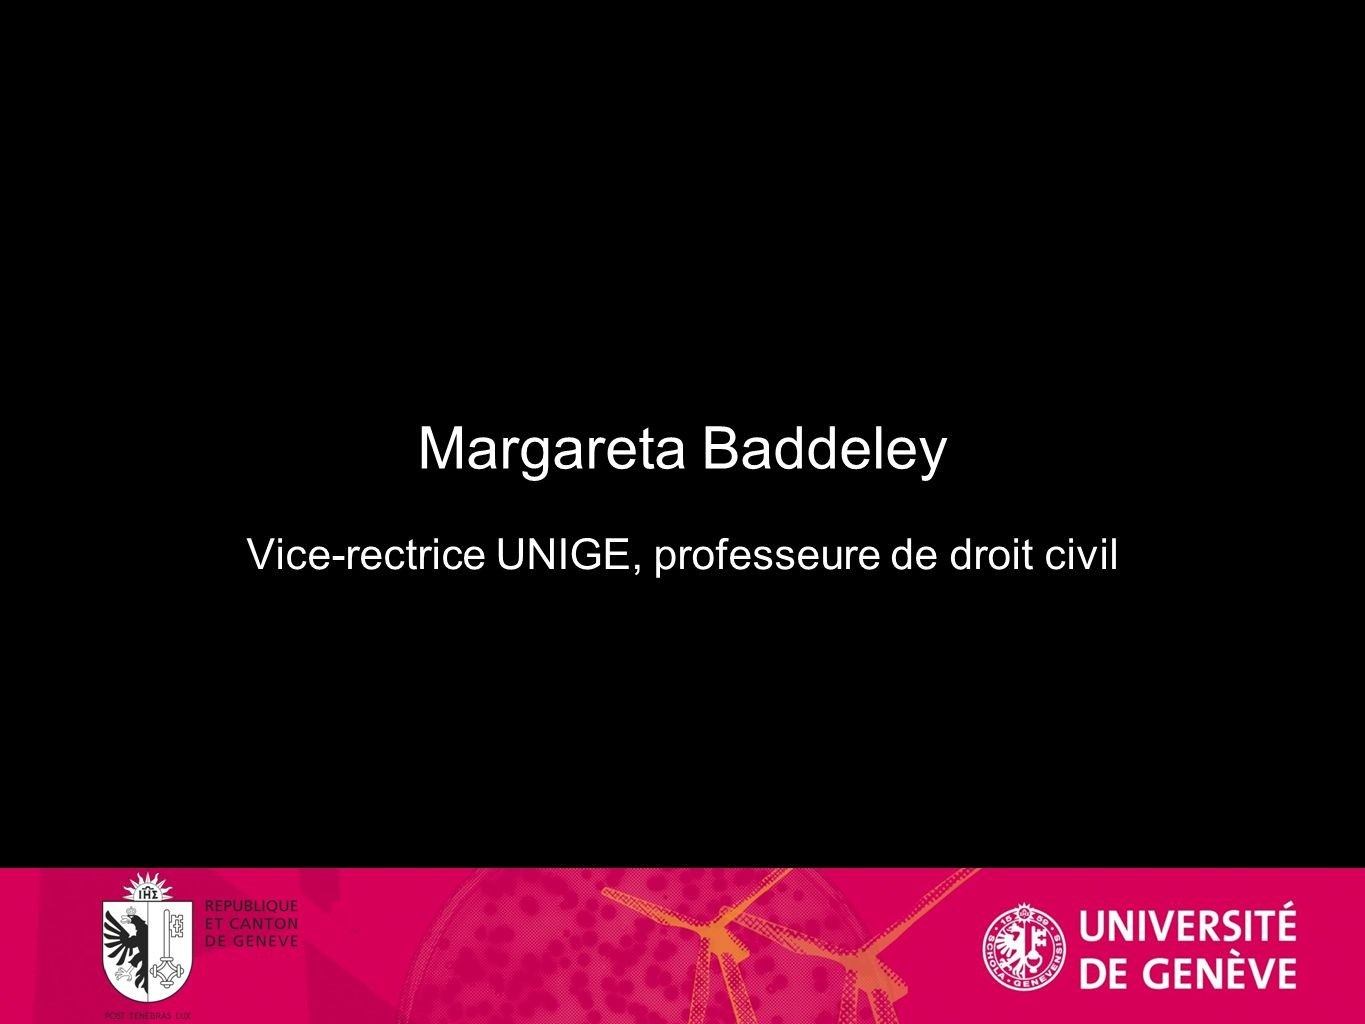 Margareta Baddeley Vice-rectrice UNIGE, professeure de droit civil